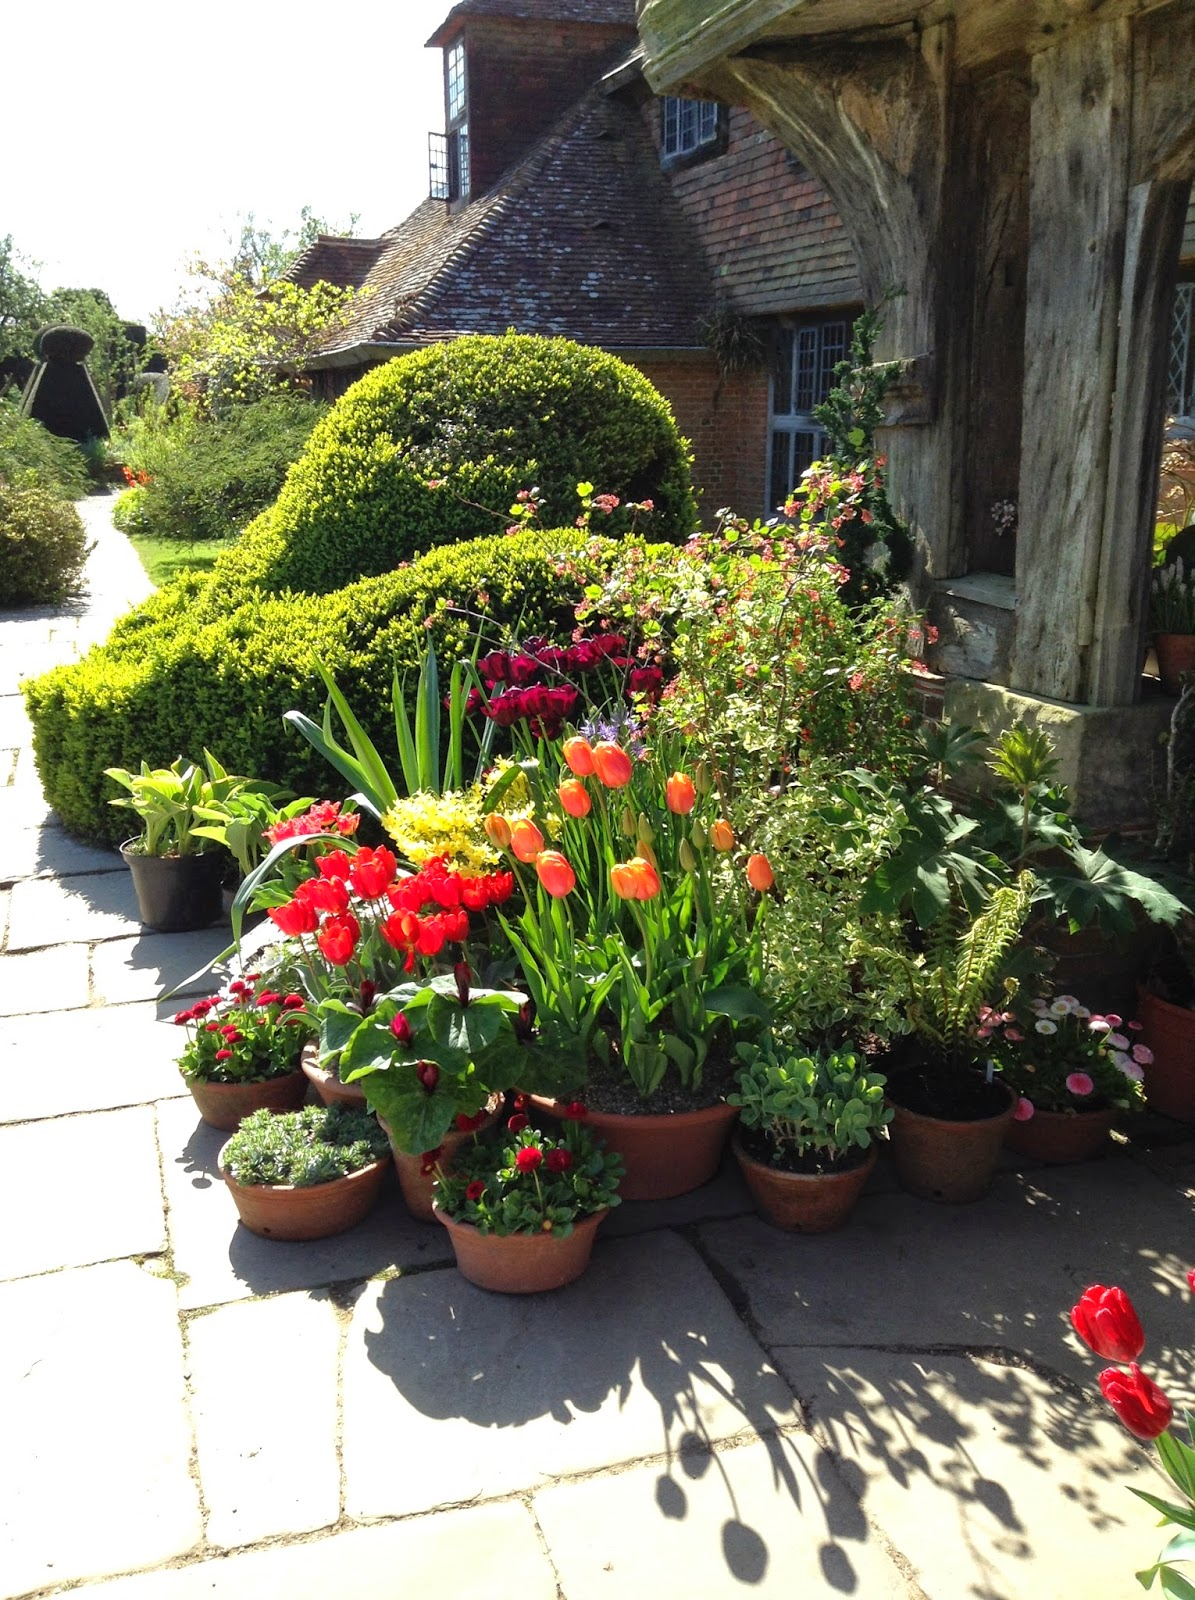 Vibrant tulips display in front of Great Dixter House porch - Photo by Noemi Mercurelli